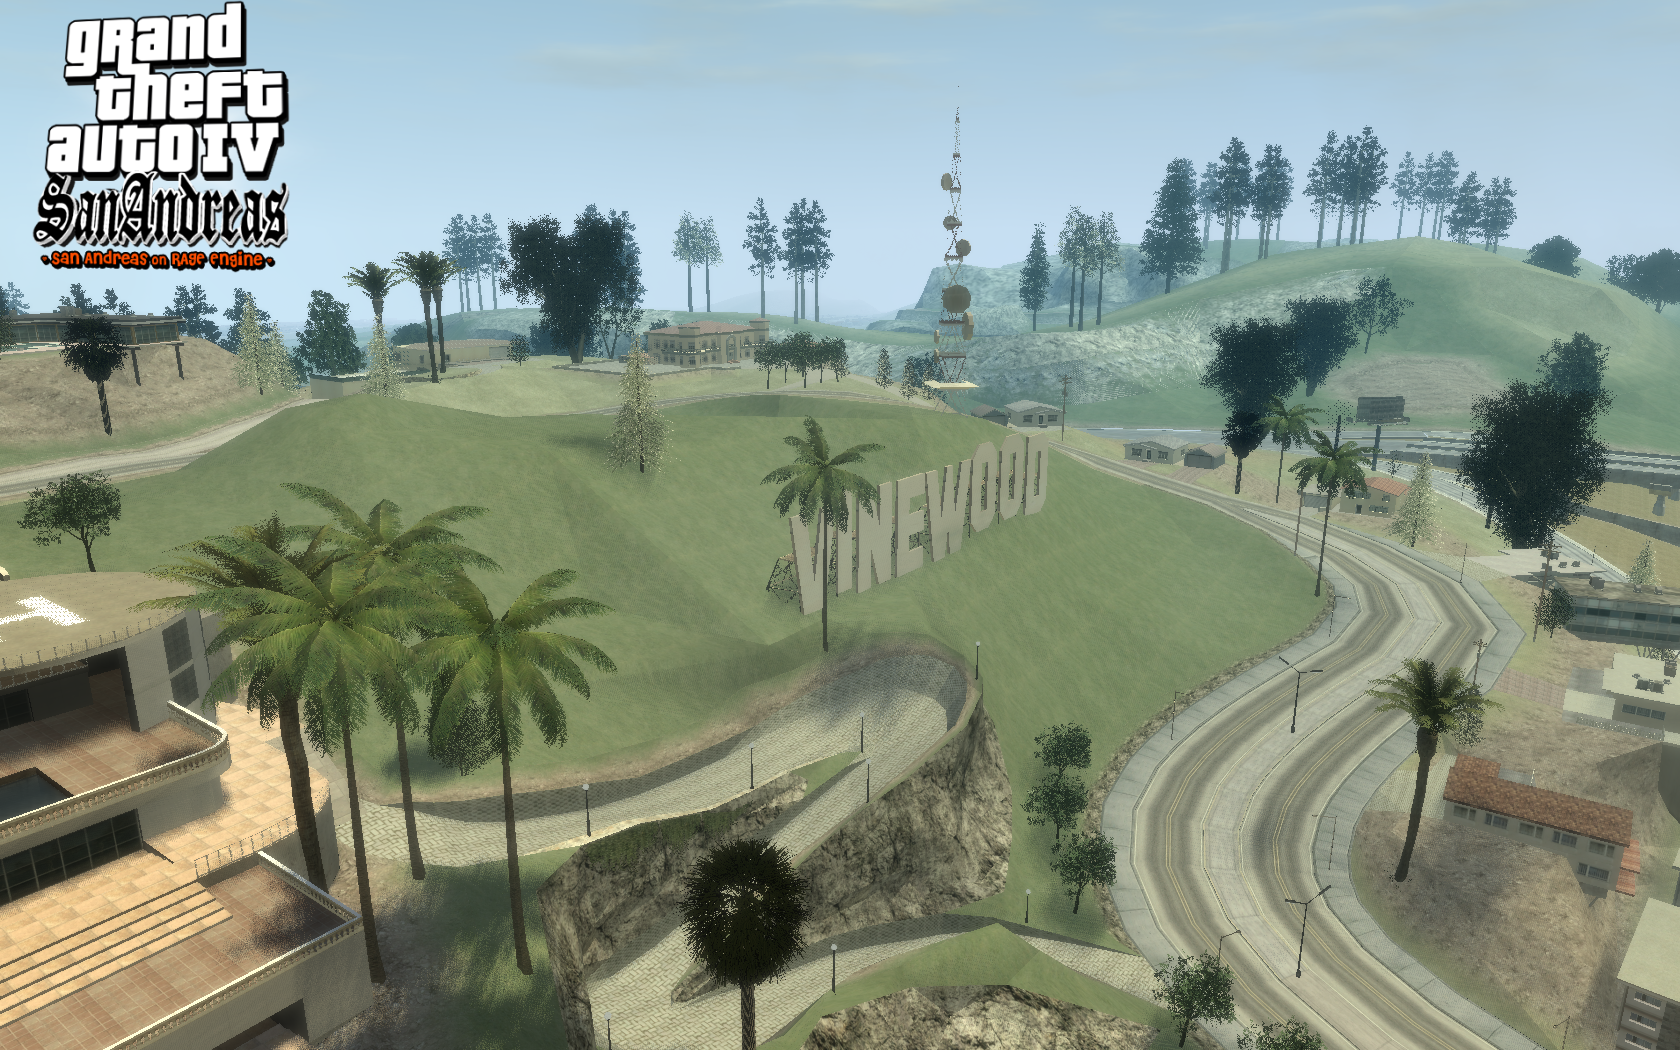 onQ World: Grand Theft Auto IV: San Andreas mod info & download